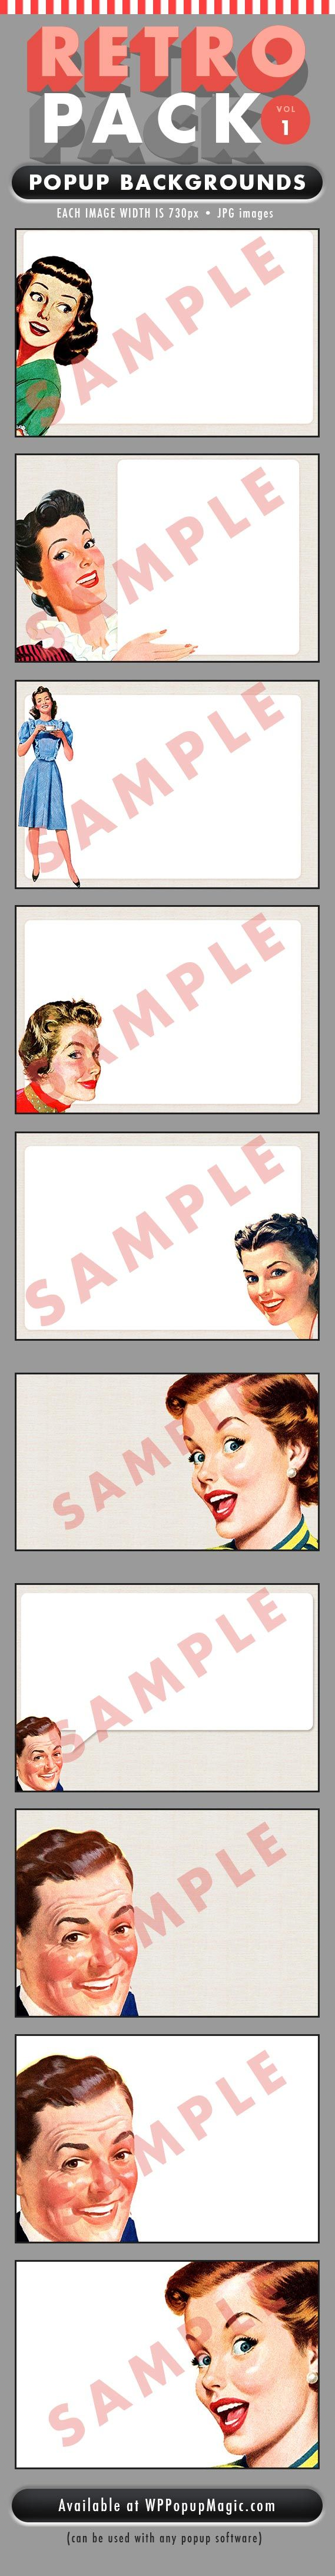 Introducing Retro Pack Vol. 1 Popup Backgrounds Grab your visitor's attention using these beautiful retro images. • Includes the 10 images below • Images are in .jpg format • Each image is 730px wide Want to see a live demo? Check out our Exit Popup demo here Reg. $37 Now only $17.00 Hurry as this...